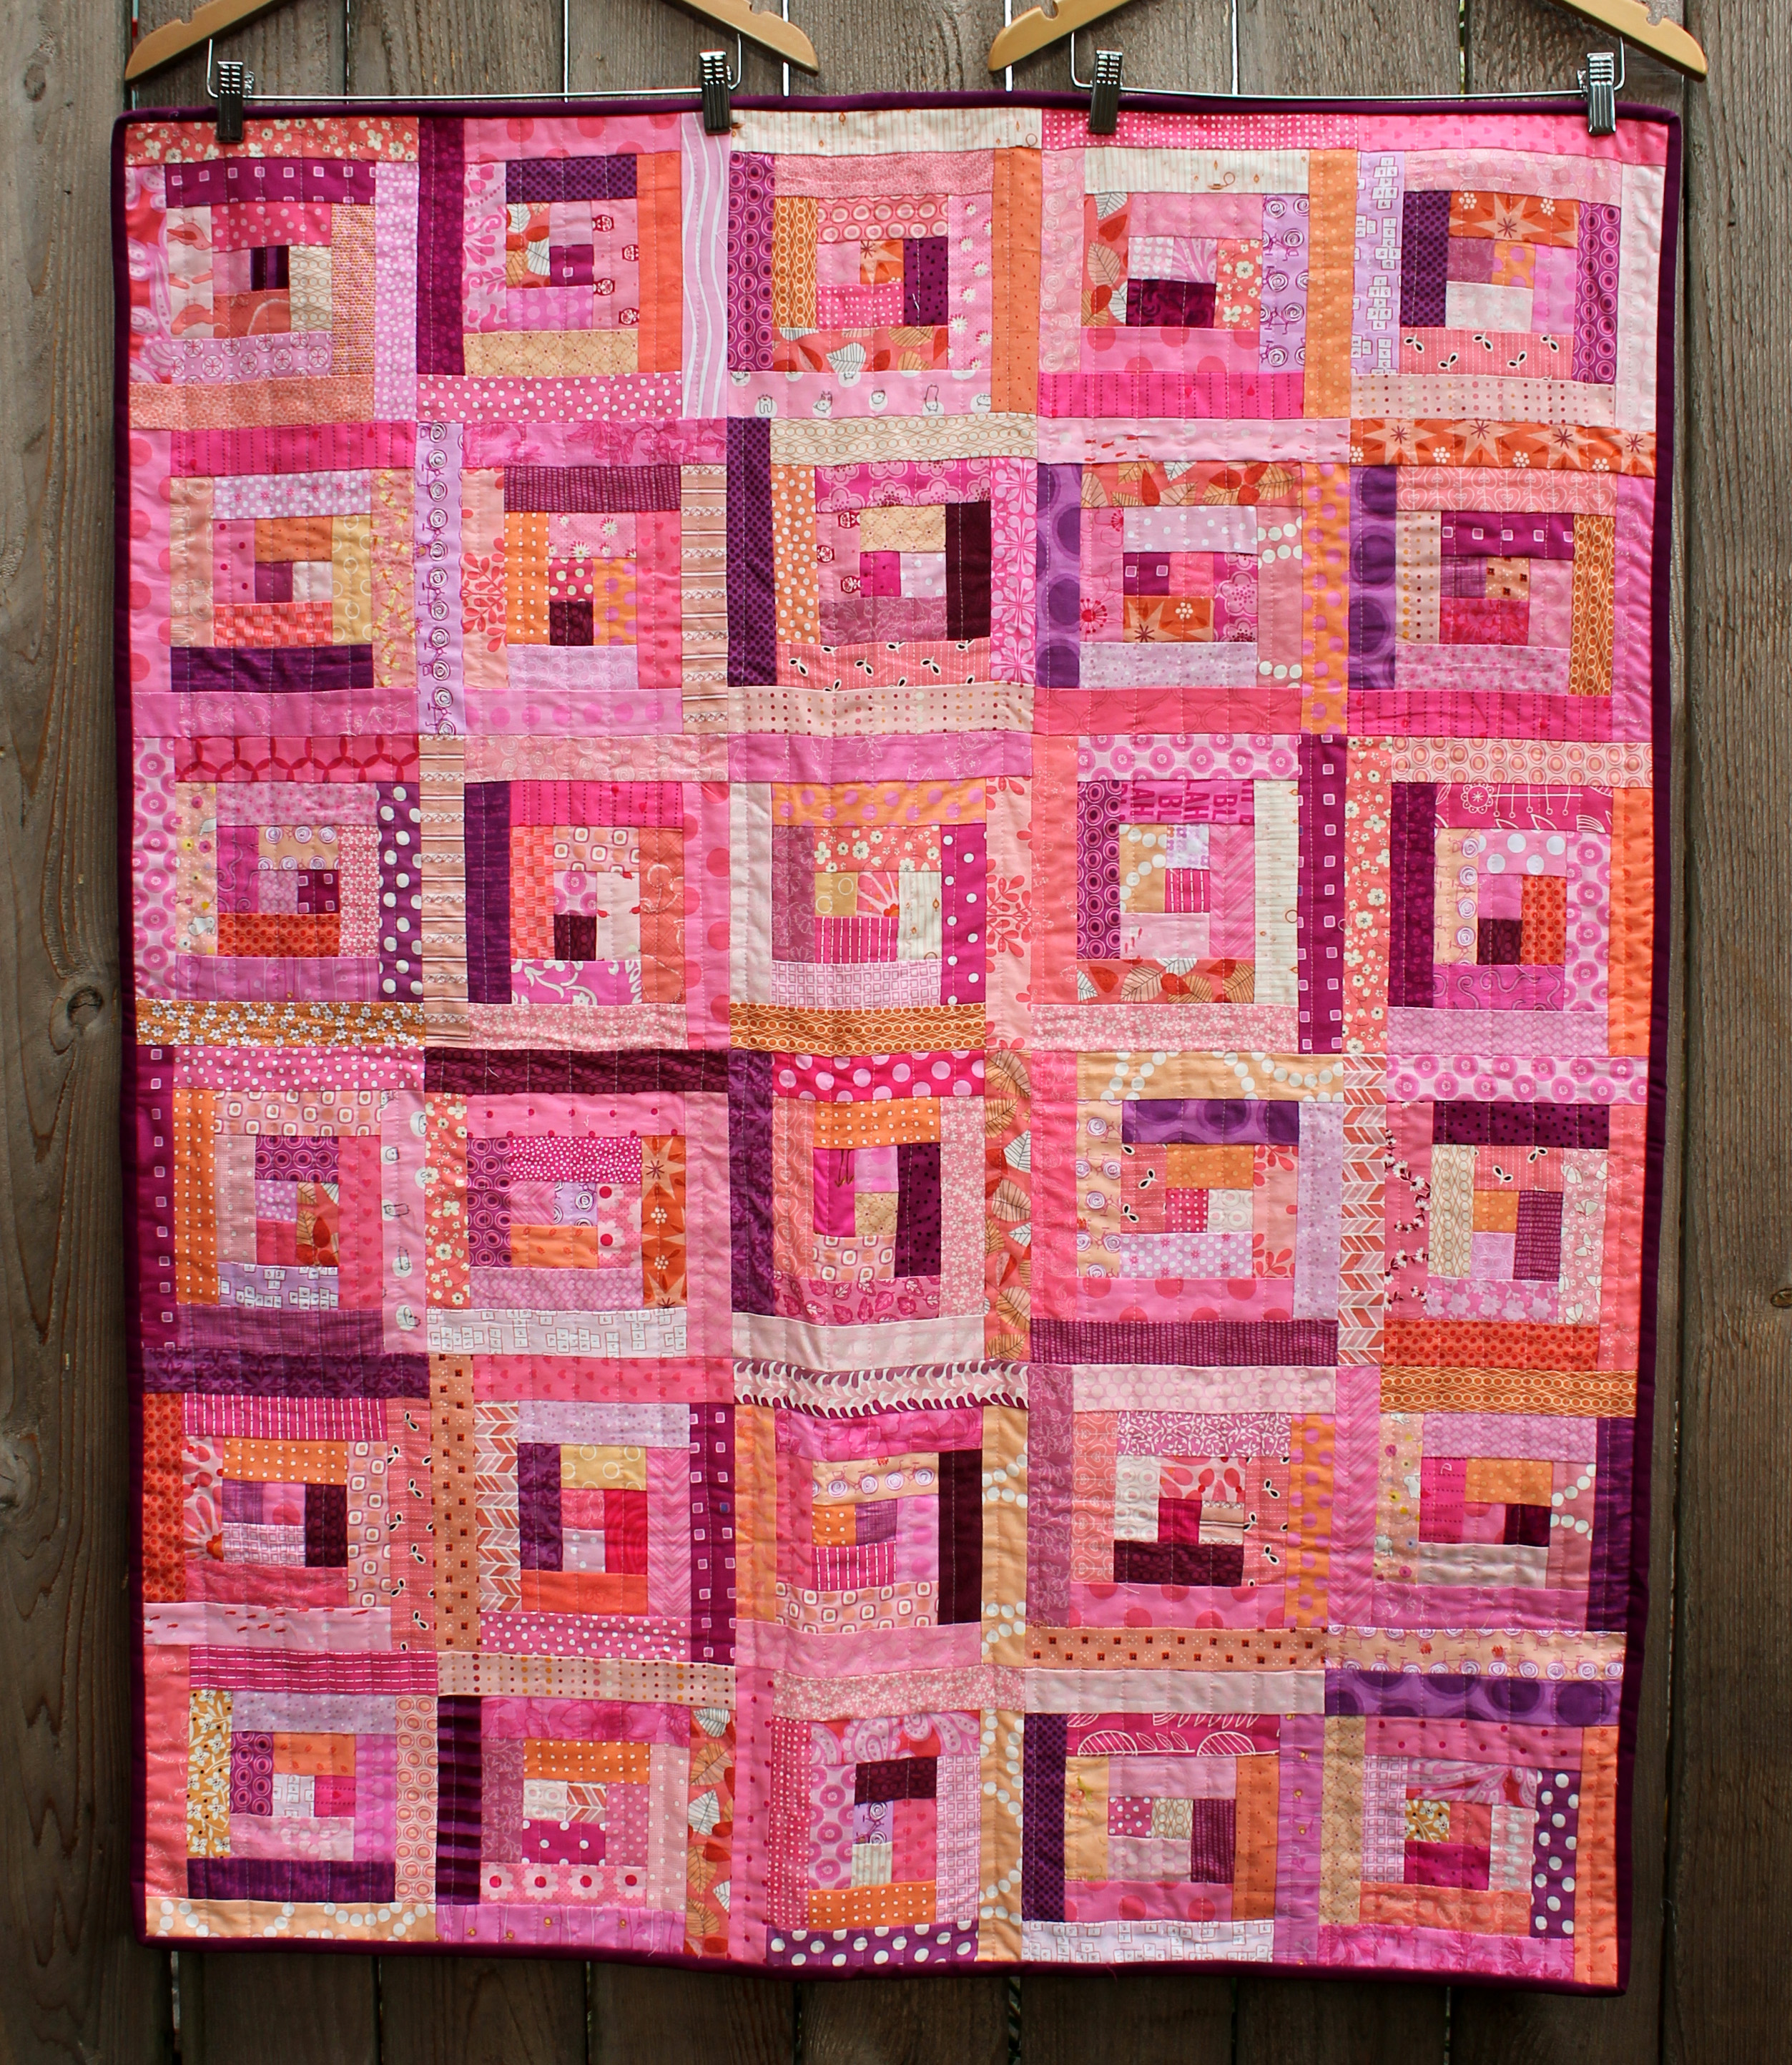 Very Impressive portraiture of quilted Blush using the diagonal lines of the log cabin block as a  with #A54726 color and 2506x2887 pixels